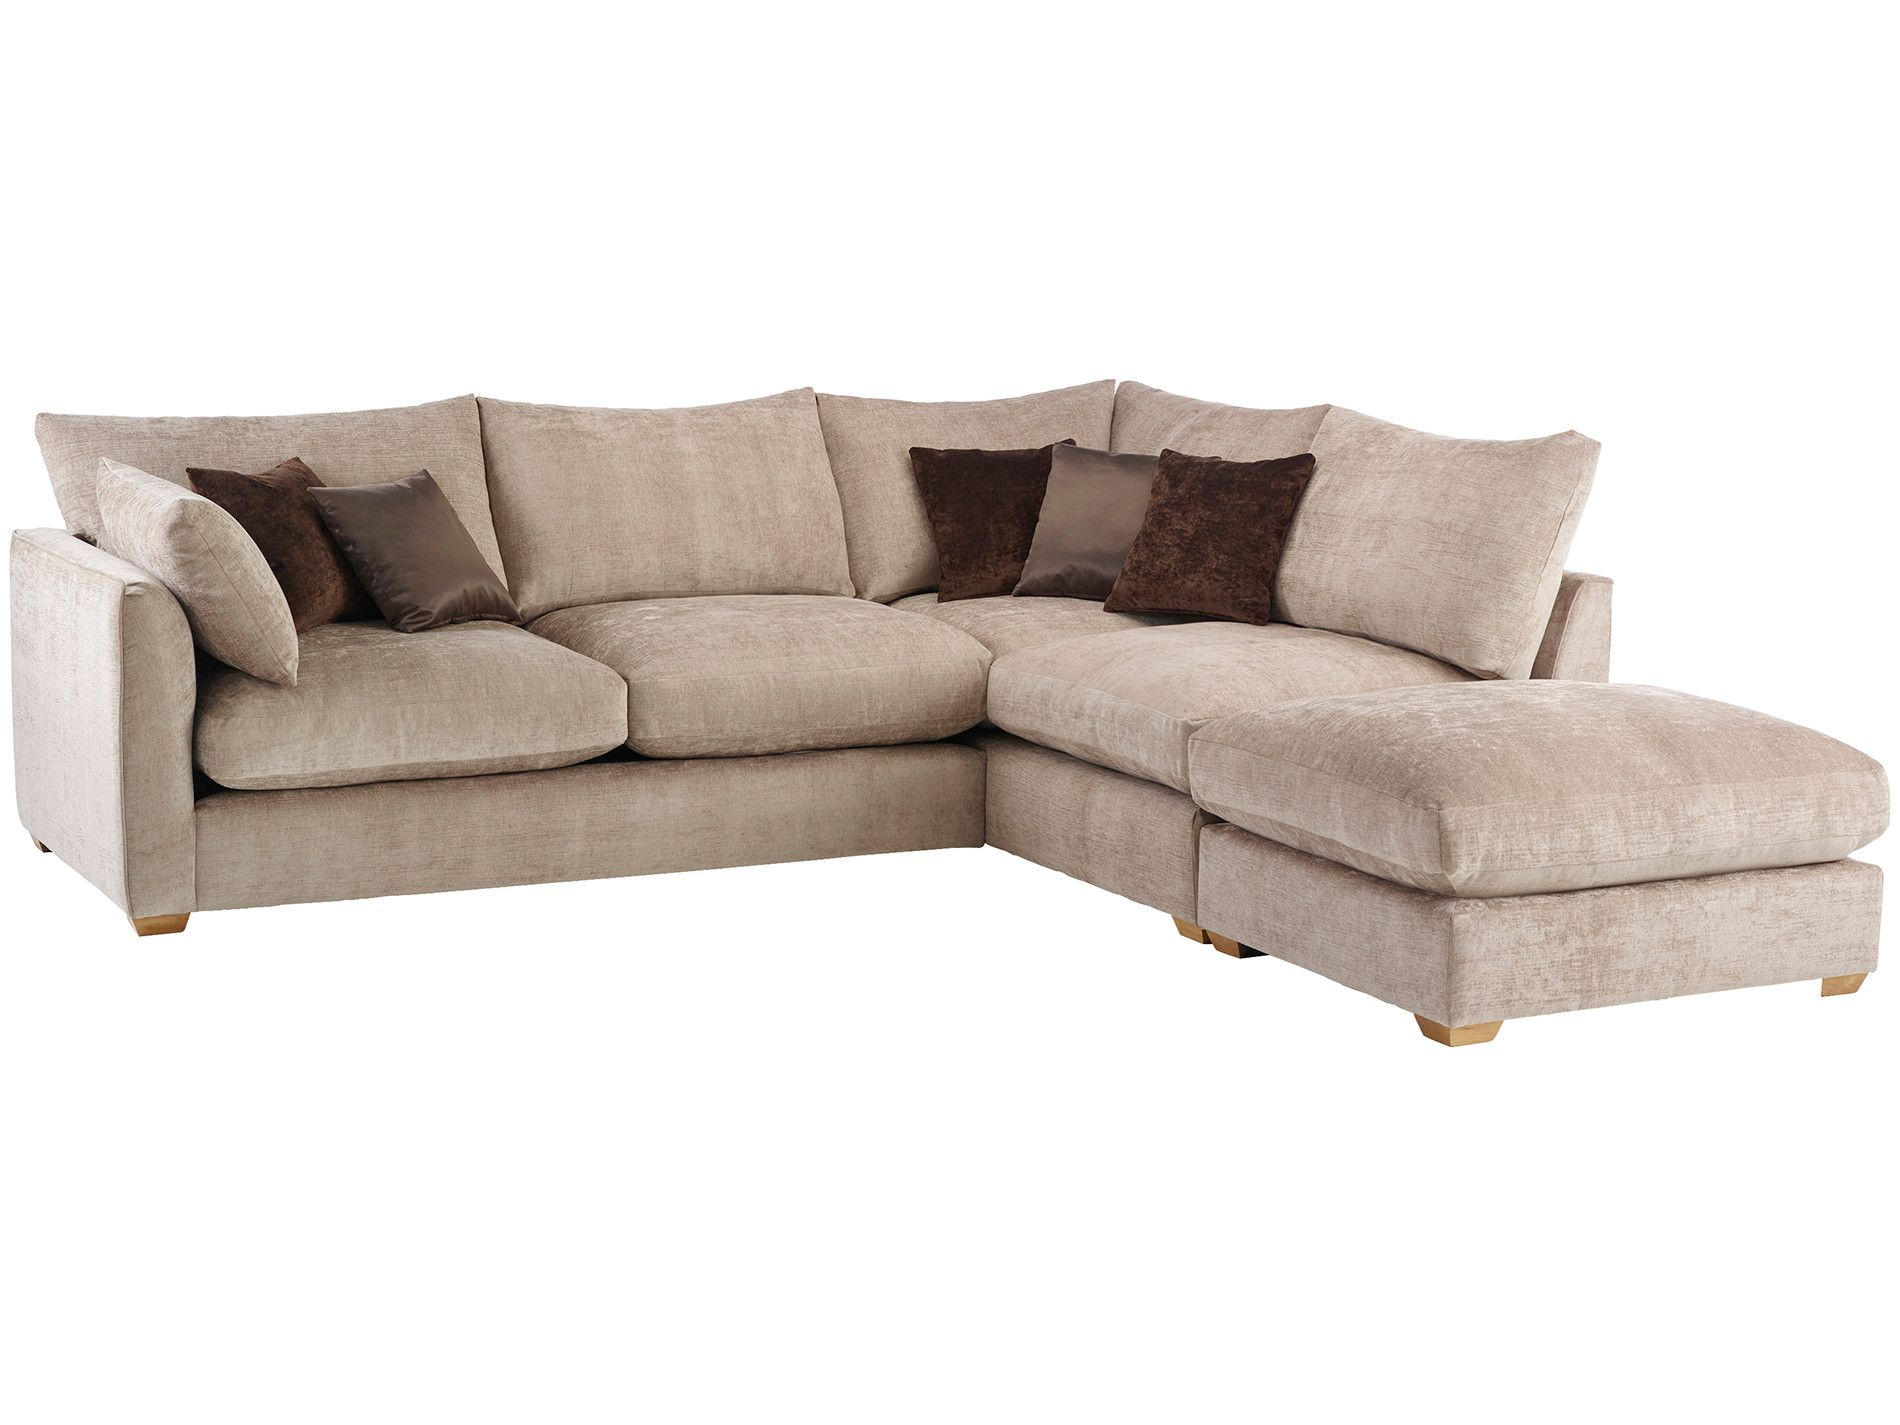 Sofa Furnitureland South Bed Nyc Furniture Land Corner Sofas Brokeasshome